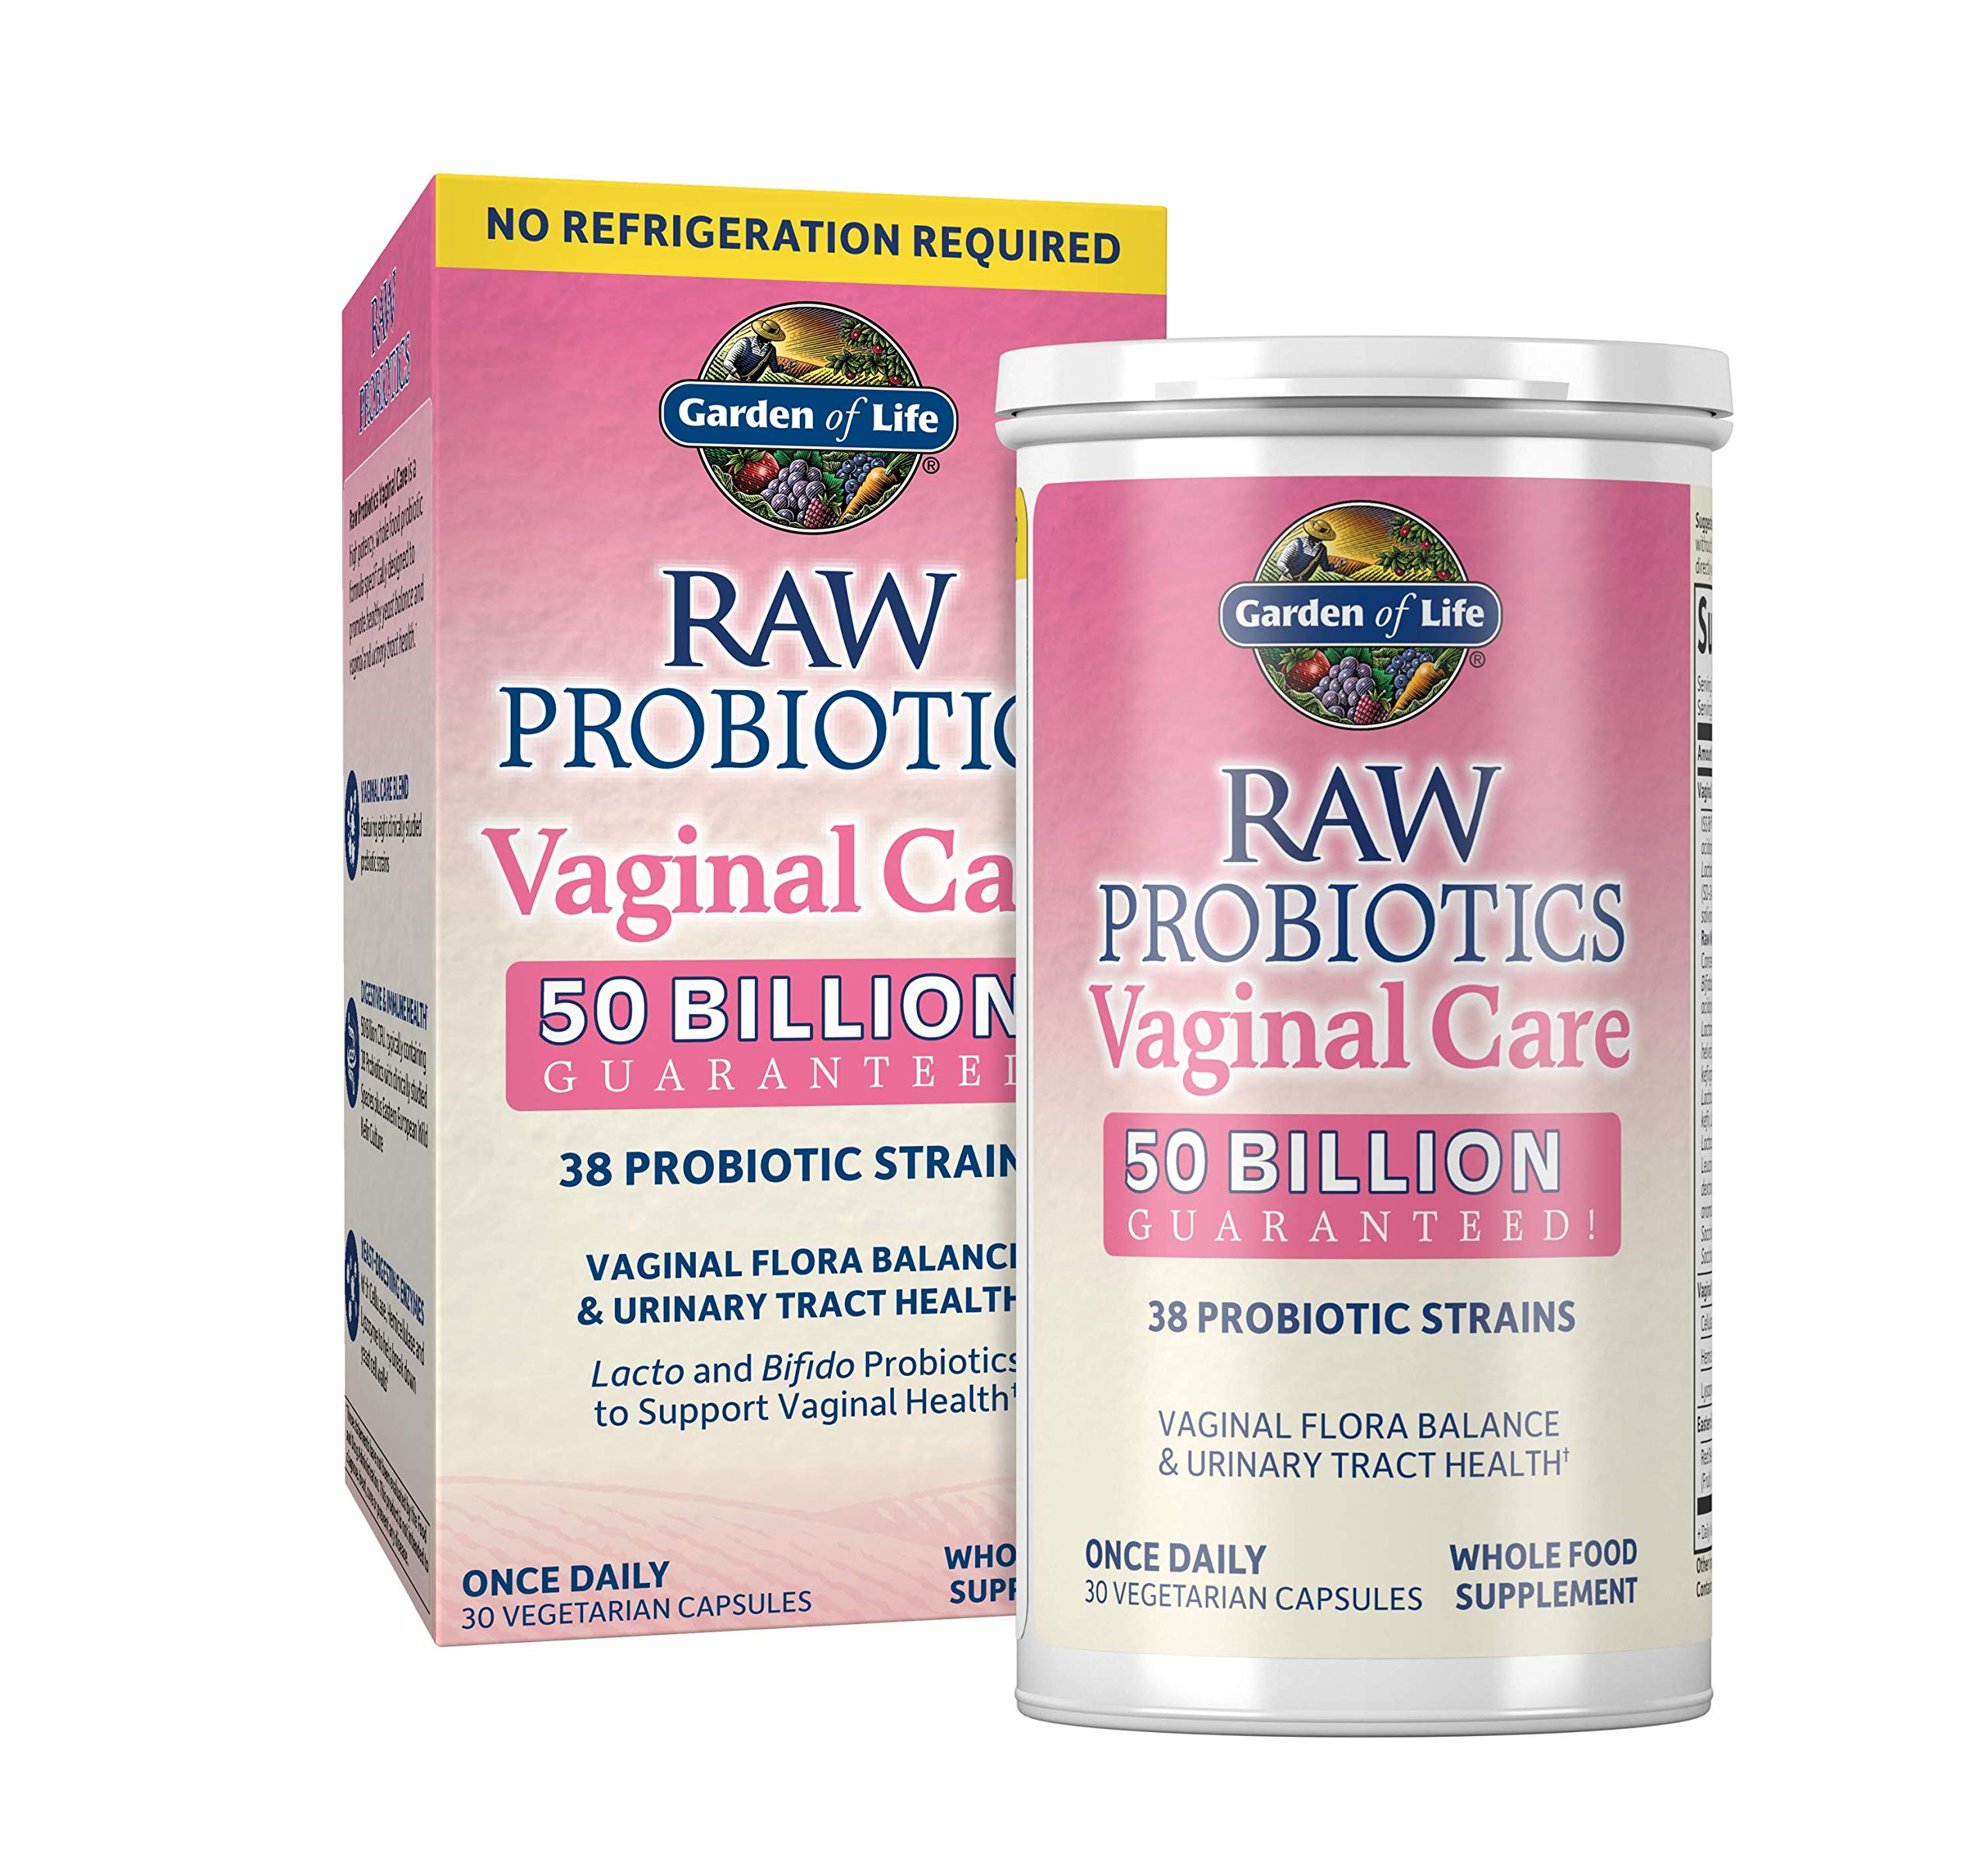 Garden of Life RAW Probiotics Vaginal Care Shelf Stable - 50 Billion CFU Guaranteed through Expiration, Acidophilus - Once Daily - Certified Gluten Free - No Refrigeration - 30 Vegetarian Capsules by Garden of Life